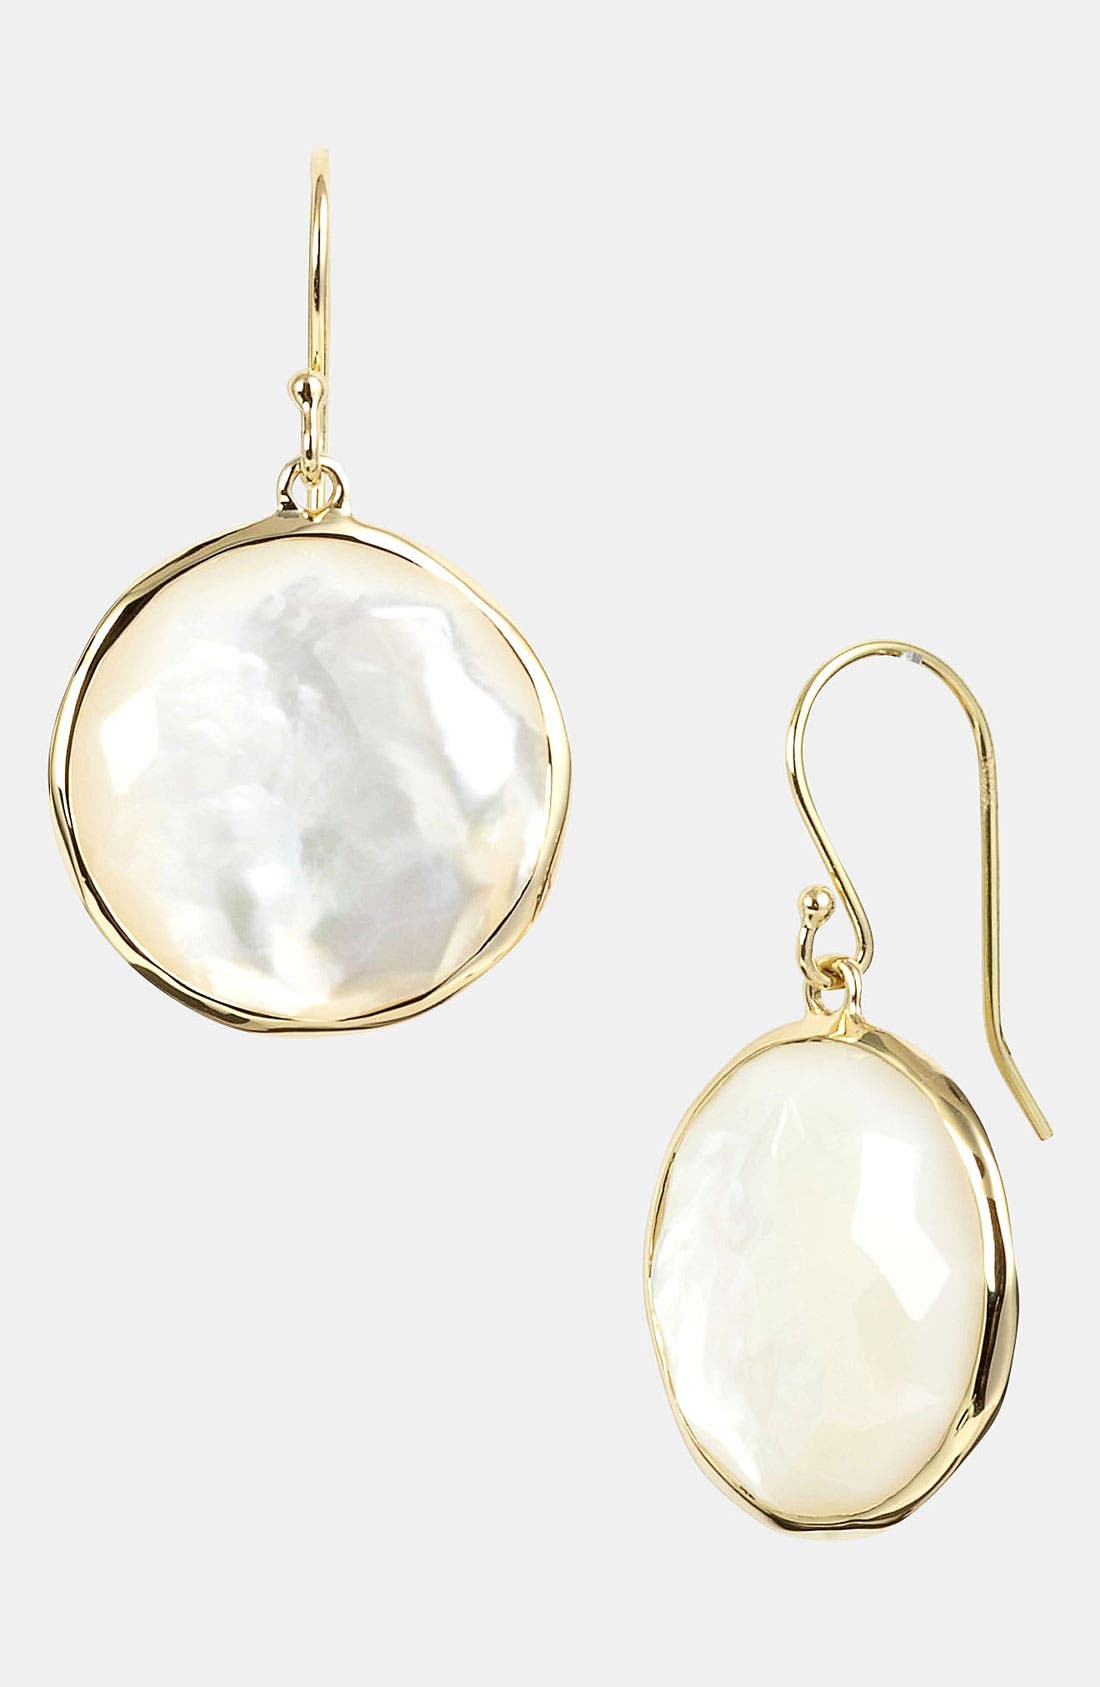 'Rock Candy - Lollipop' 18k Gold Drop Earrings,                             Main thumbnail 1, color,                             YELLOW GOLD/MOTHER OF PEARL